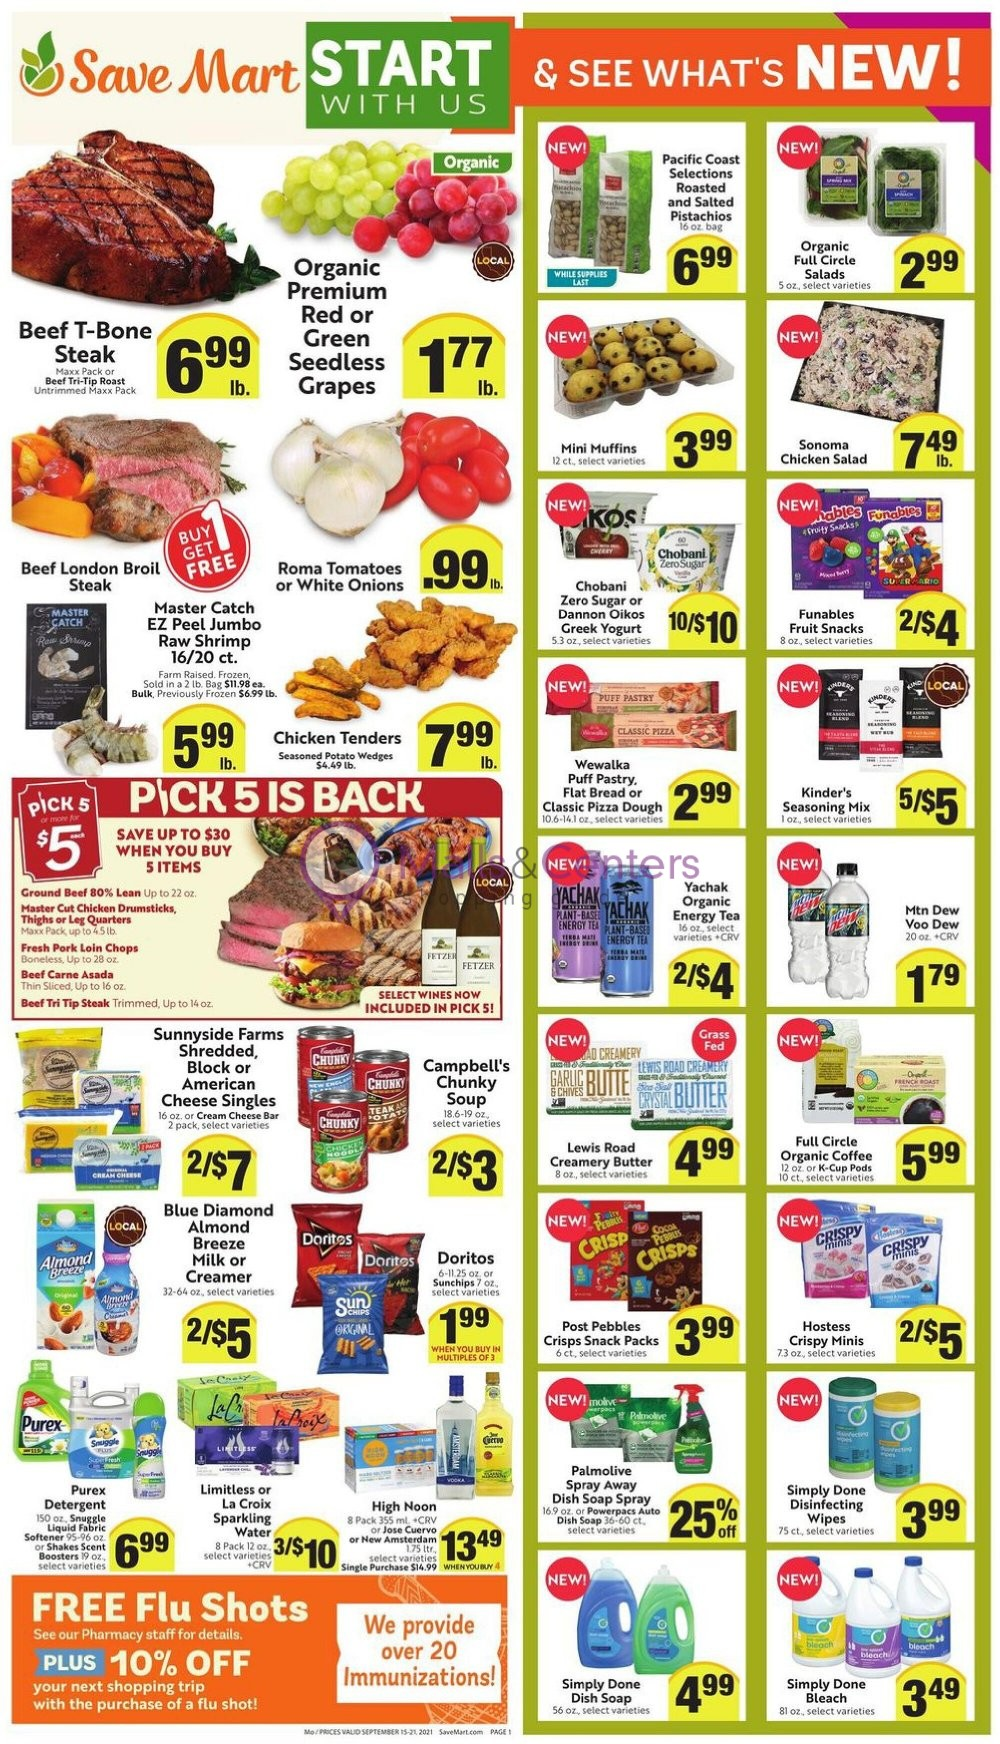 weekly ads Save Mart Supermarkets - page 1 - mallscenters.com